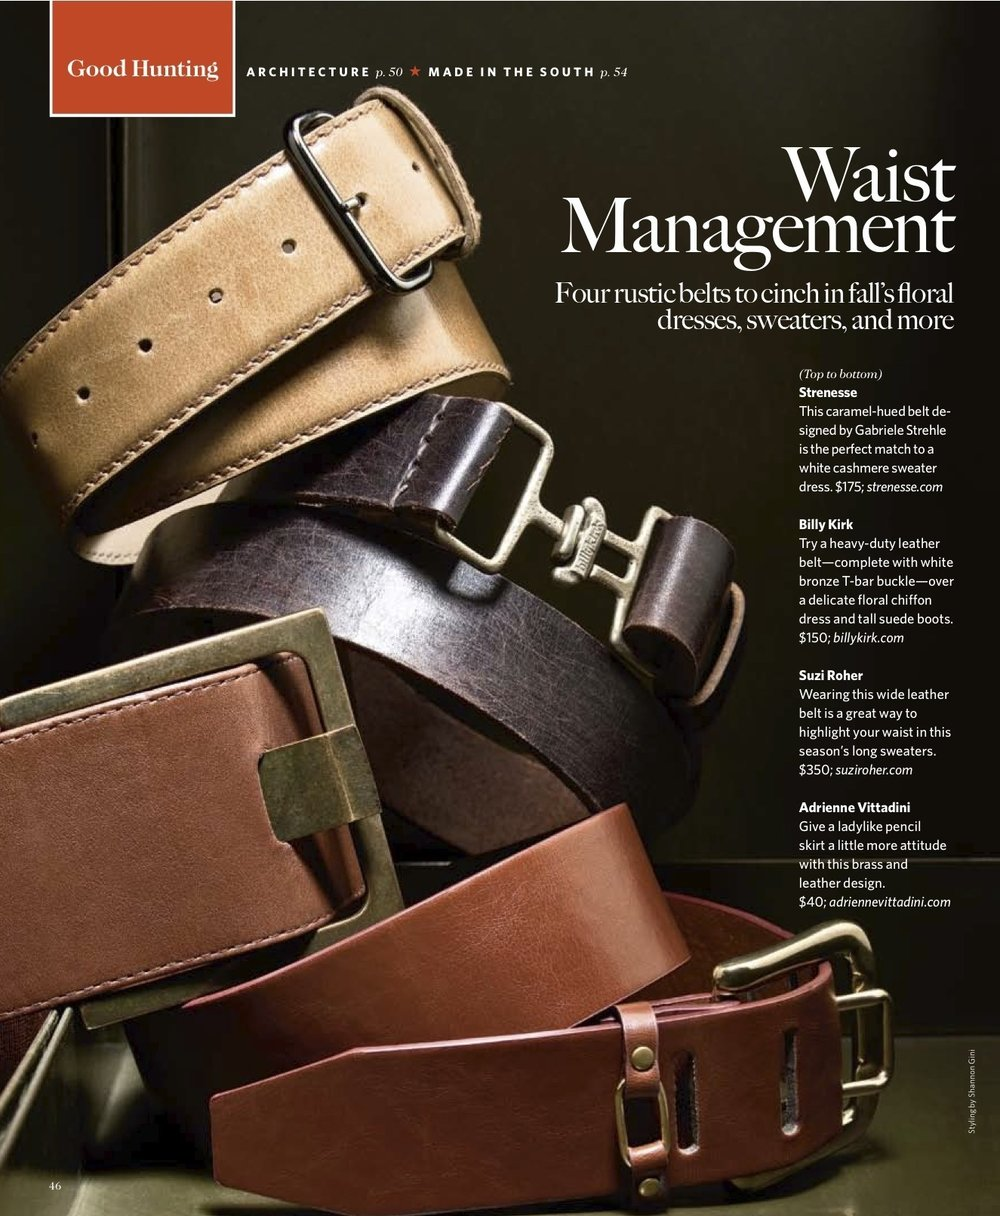 Garden & Gun Magazine: Belt Stack